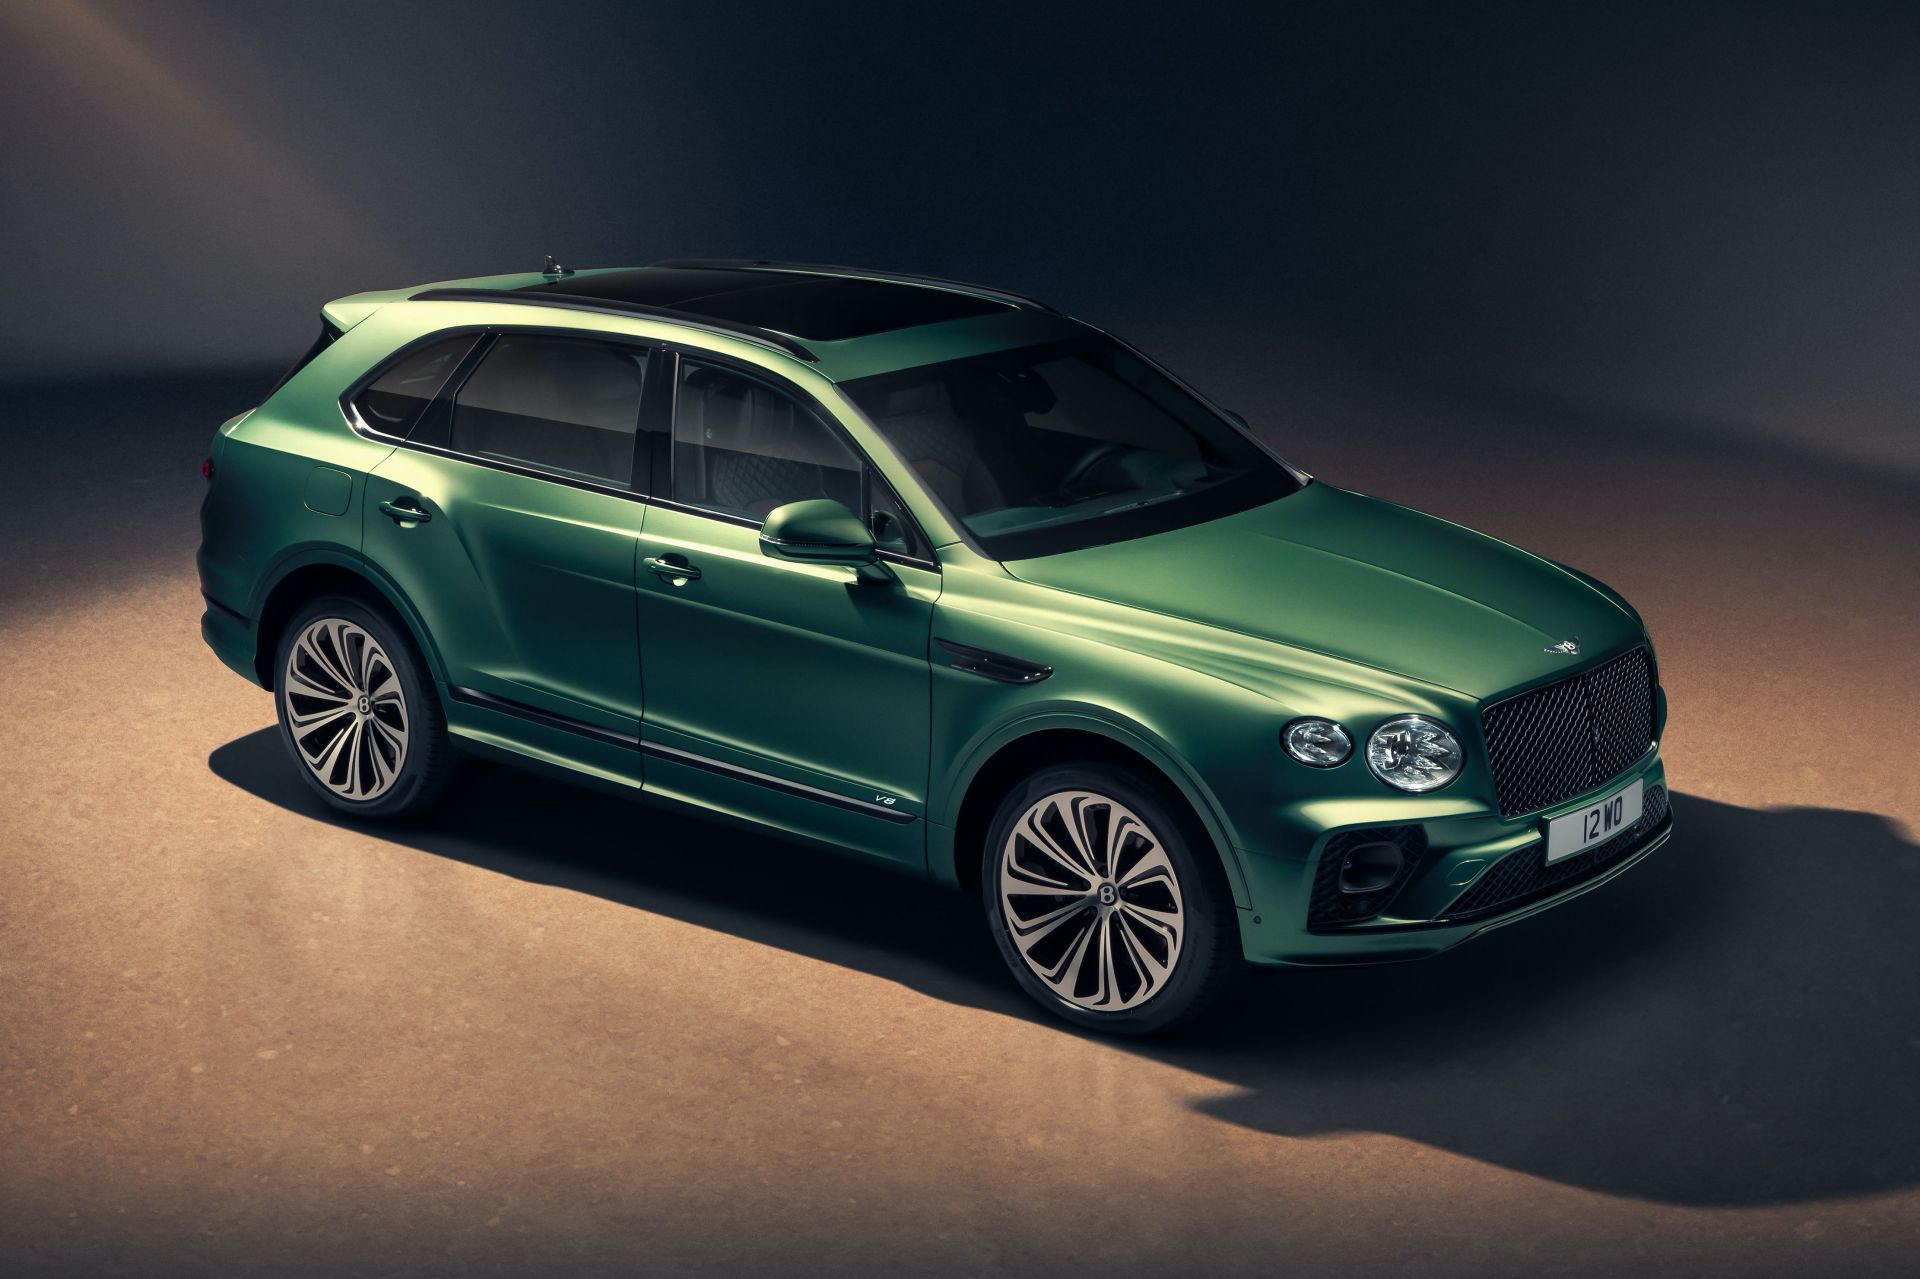 2021-bentley-bentayga-facelift-5.jpg